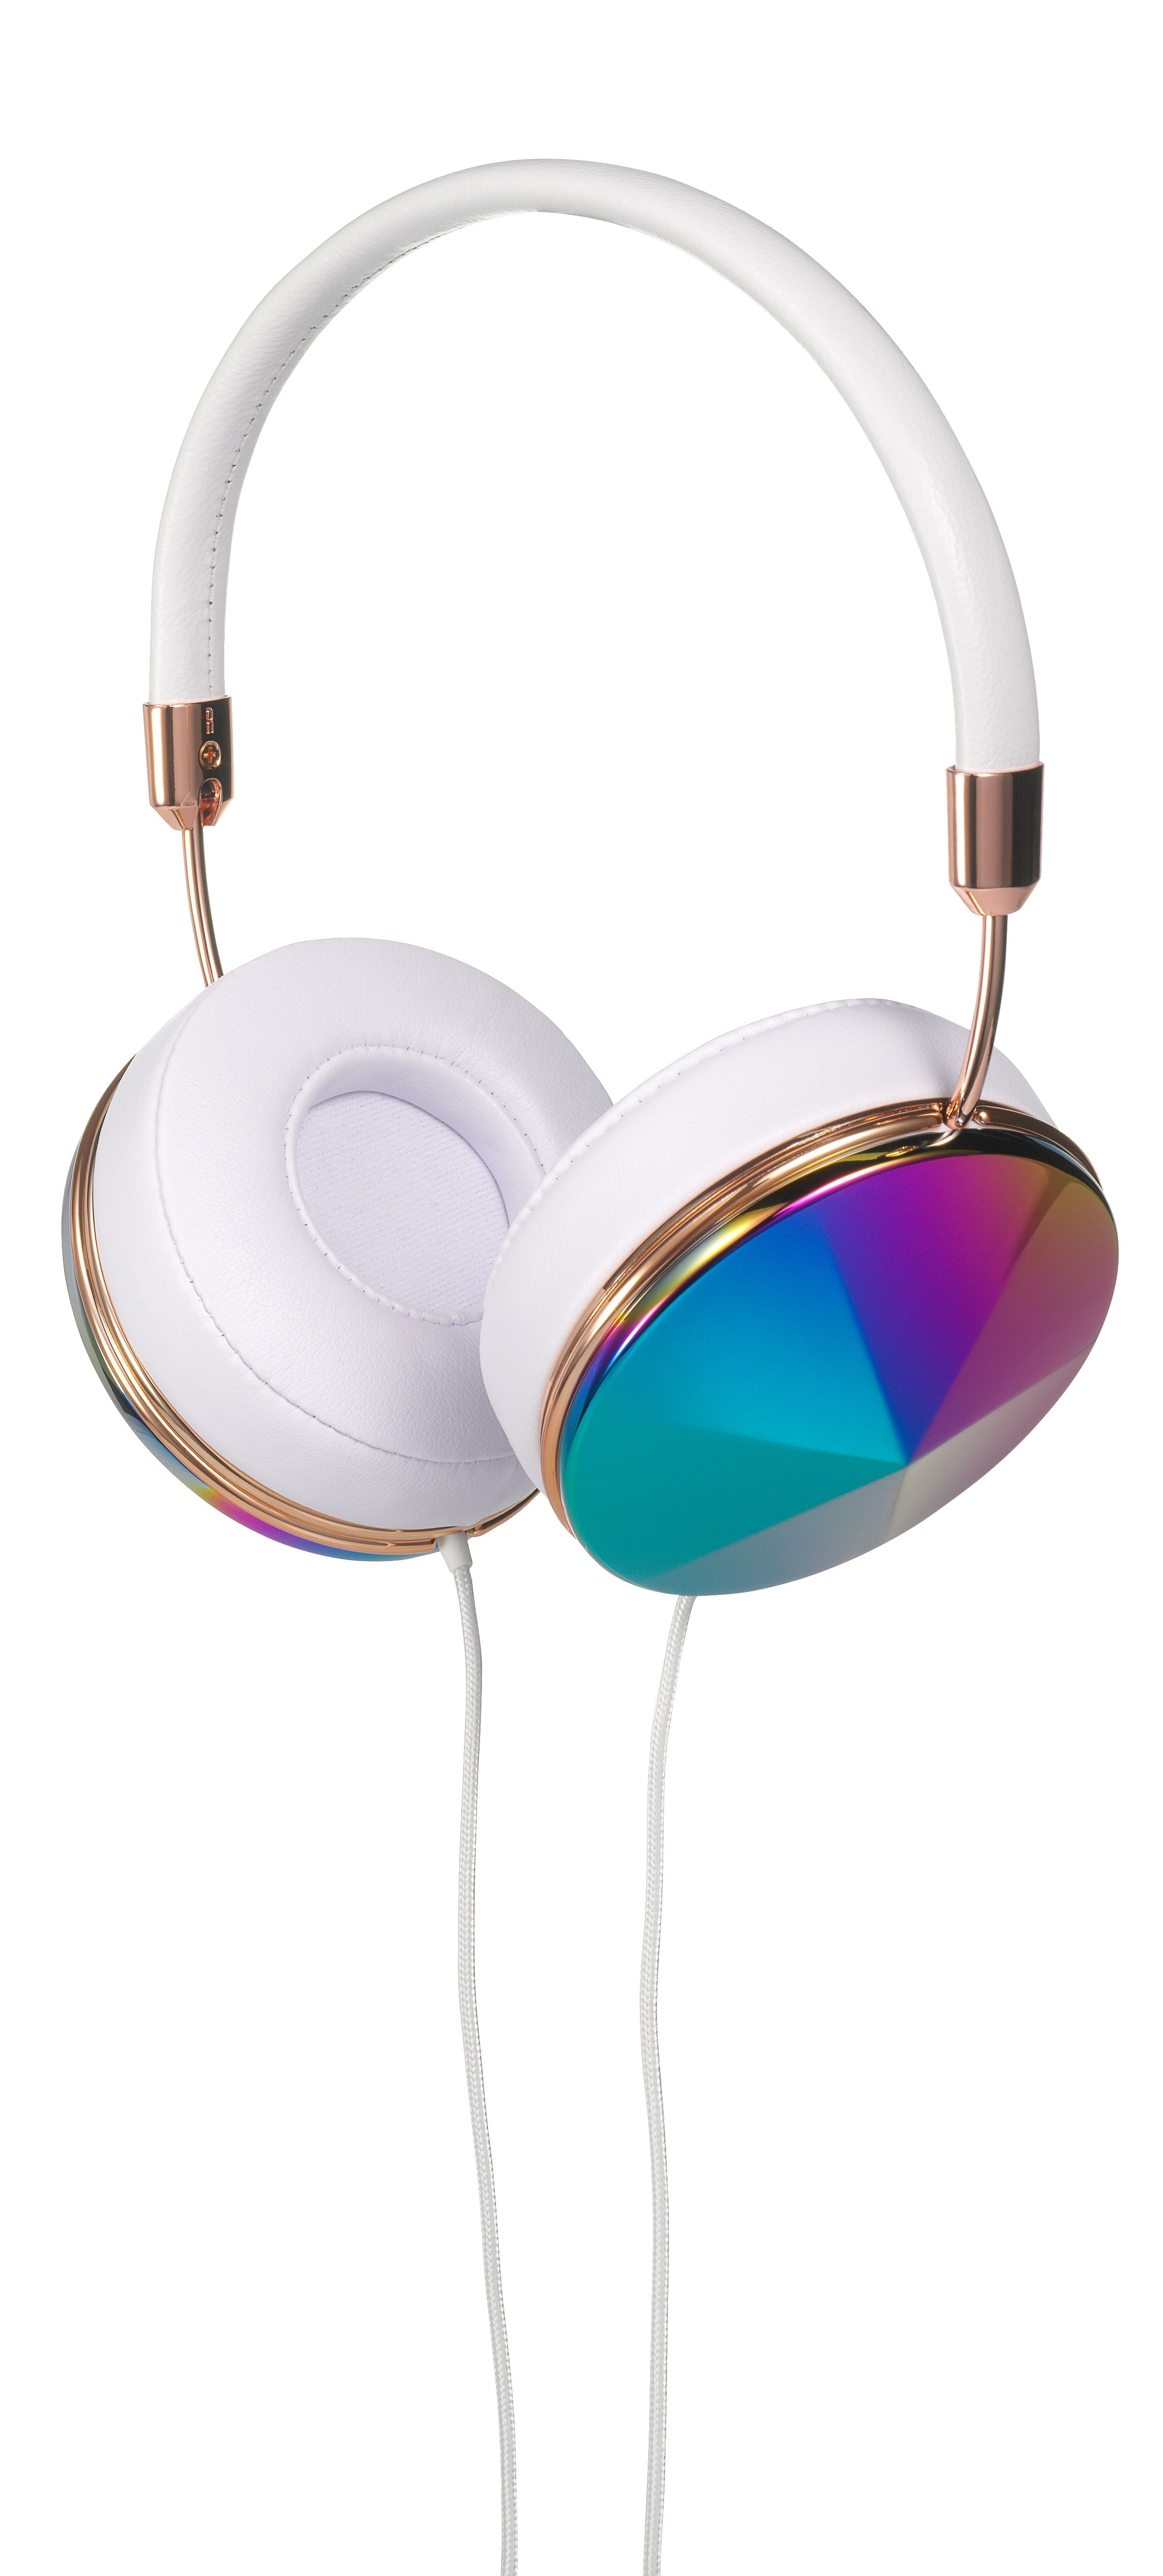 #FRENDS Headphones - our Taylor style in Oil Slick, with White Leather and Rose Gold accents. Perfect for summer wardrobes :) Available with *FREE* US shipping. Shop now at: wearefrends.com <3